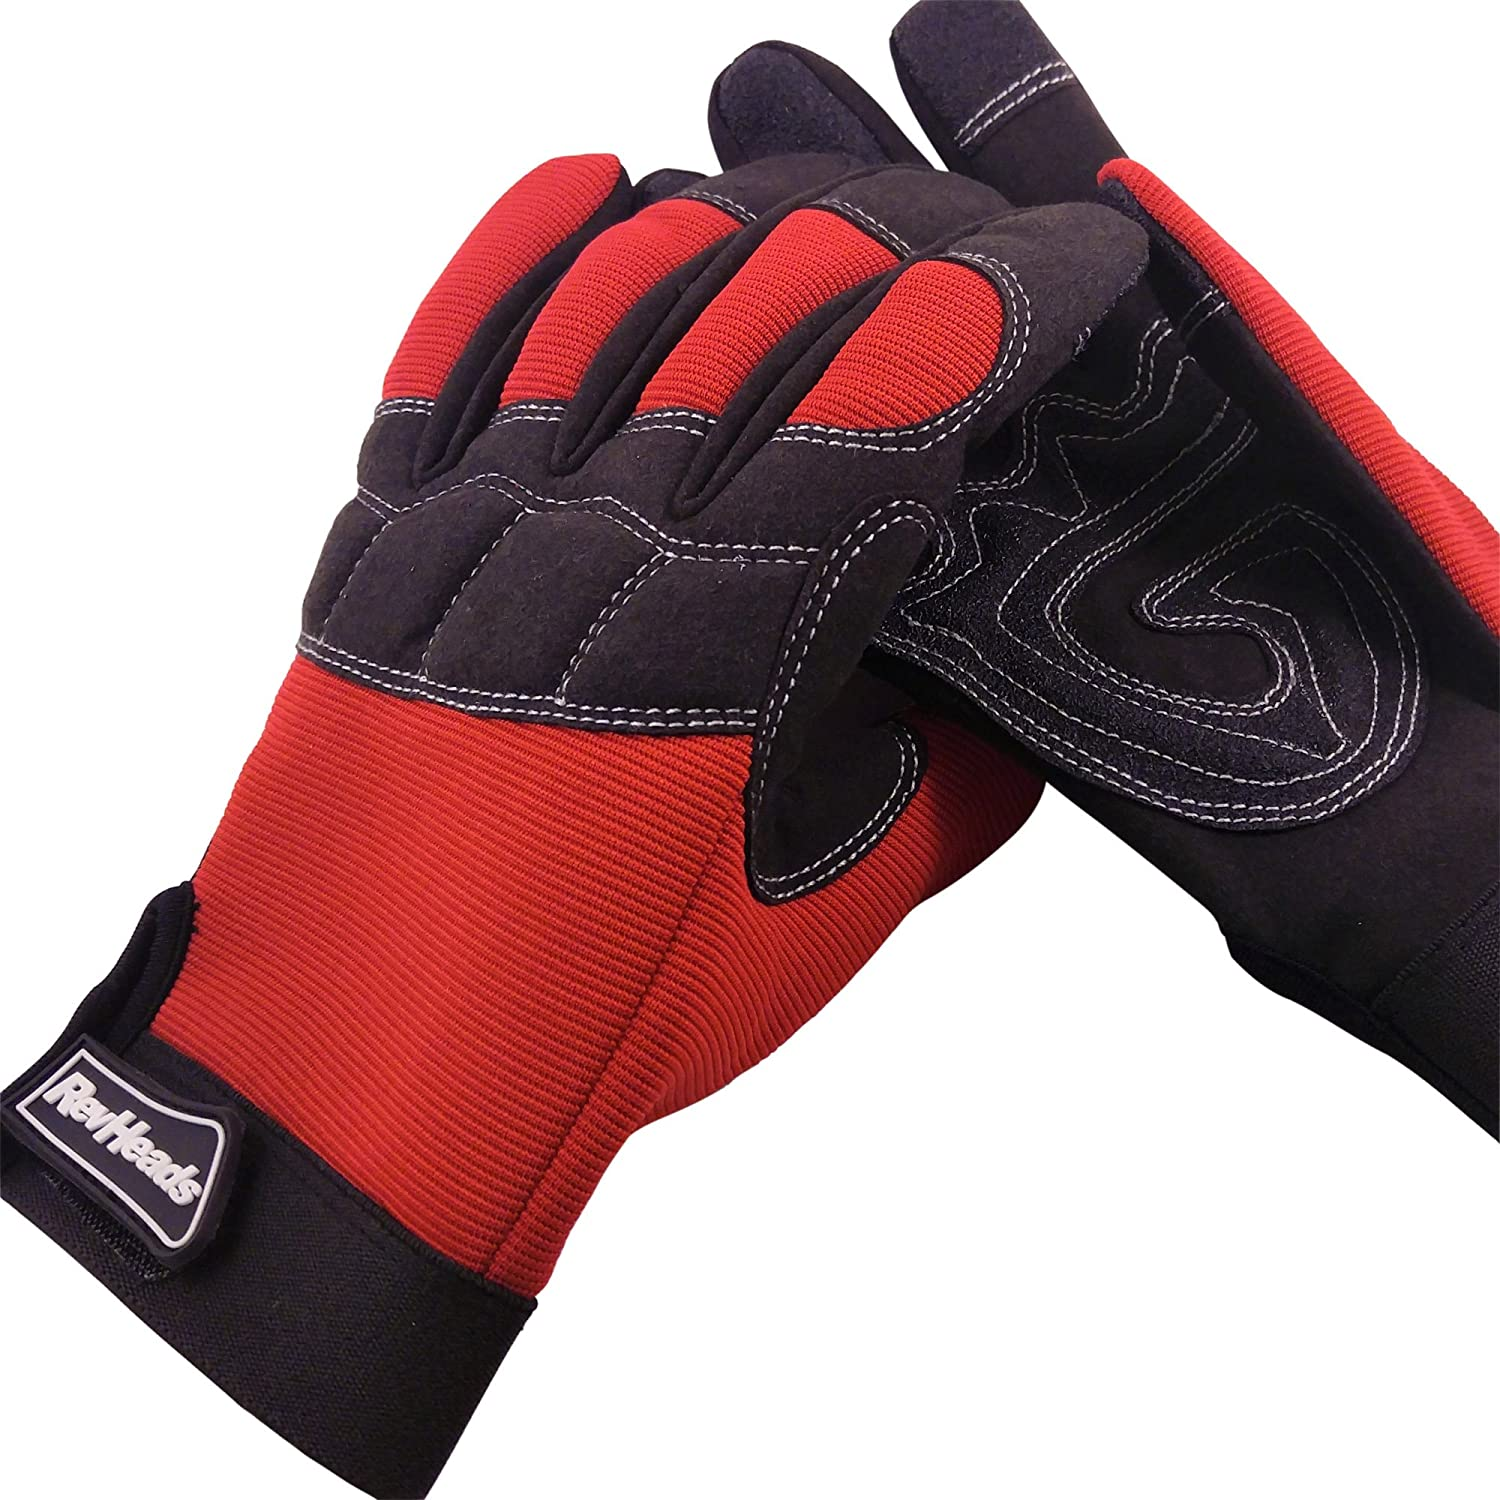 RevHeads Work Safety Gloves